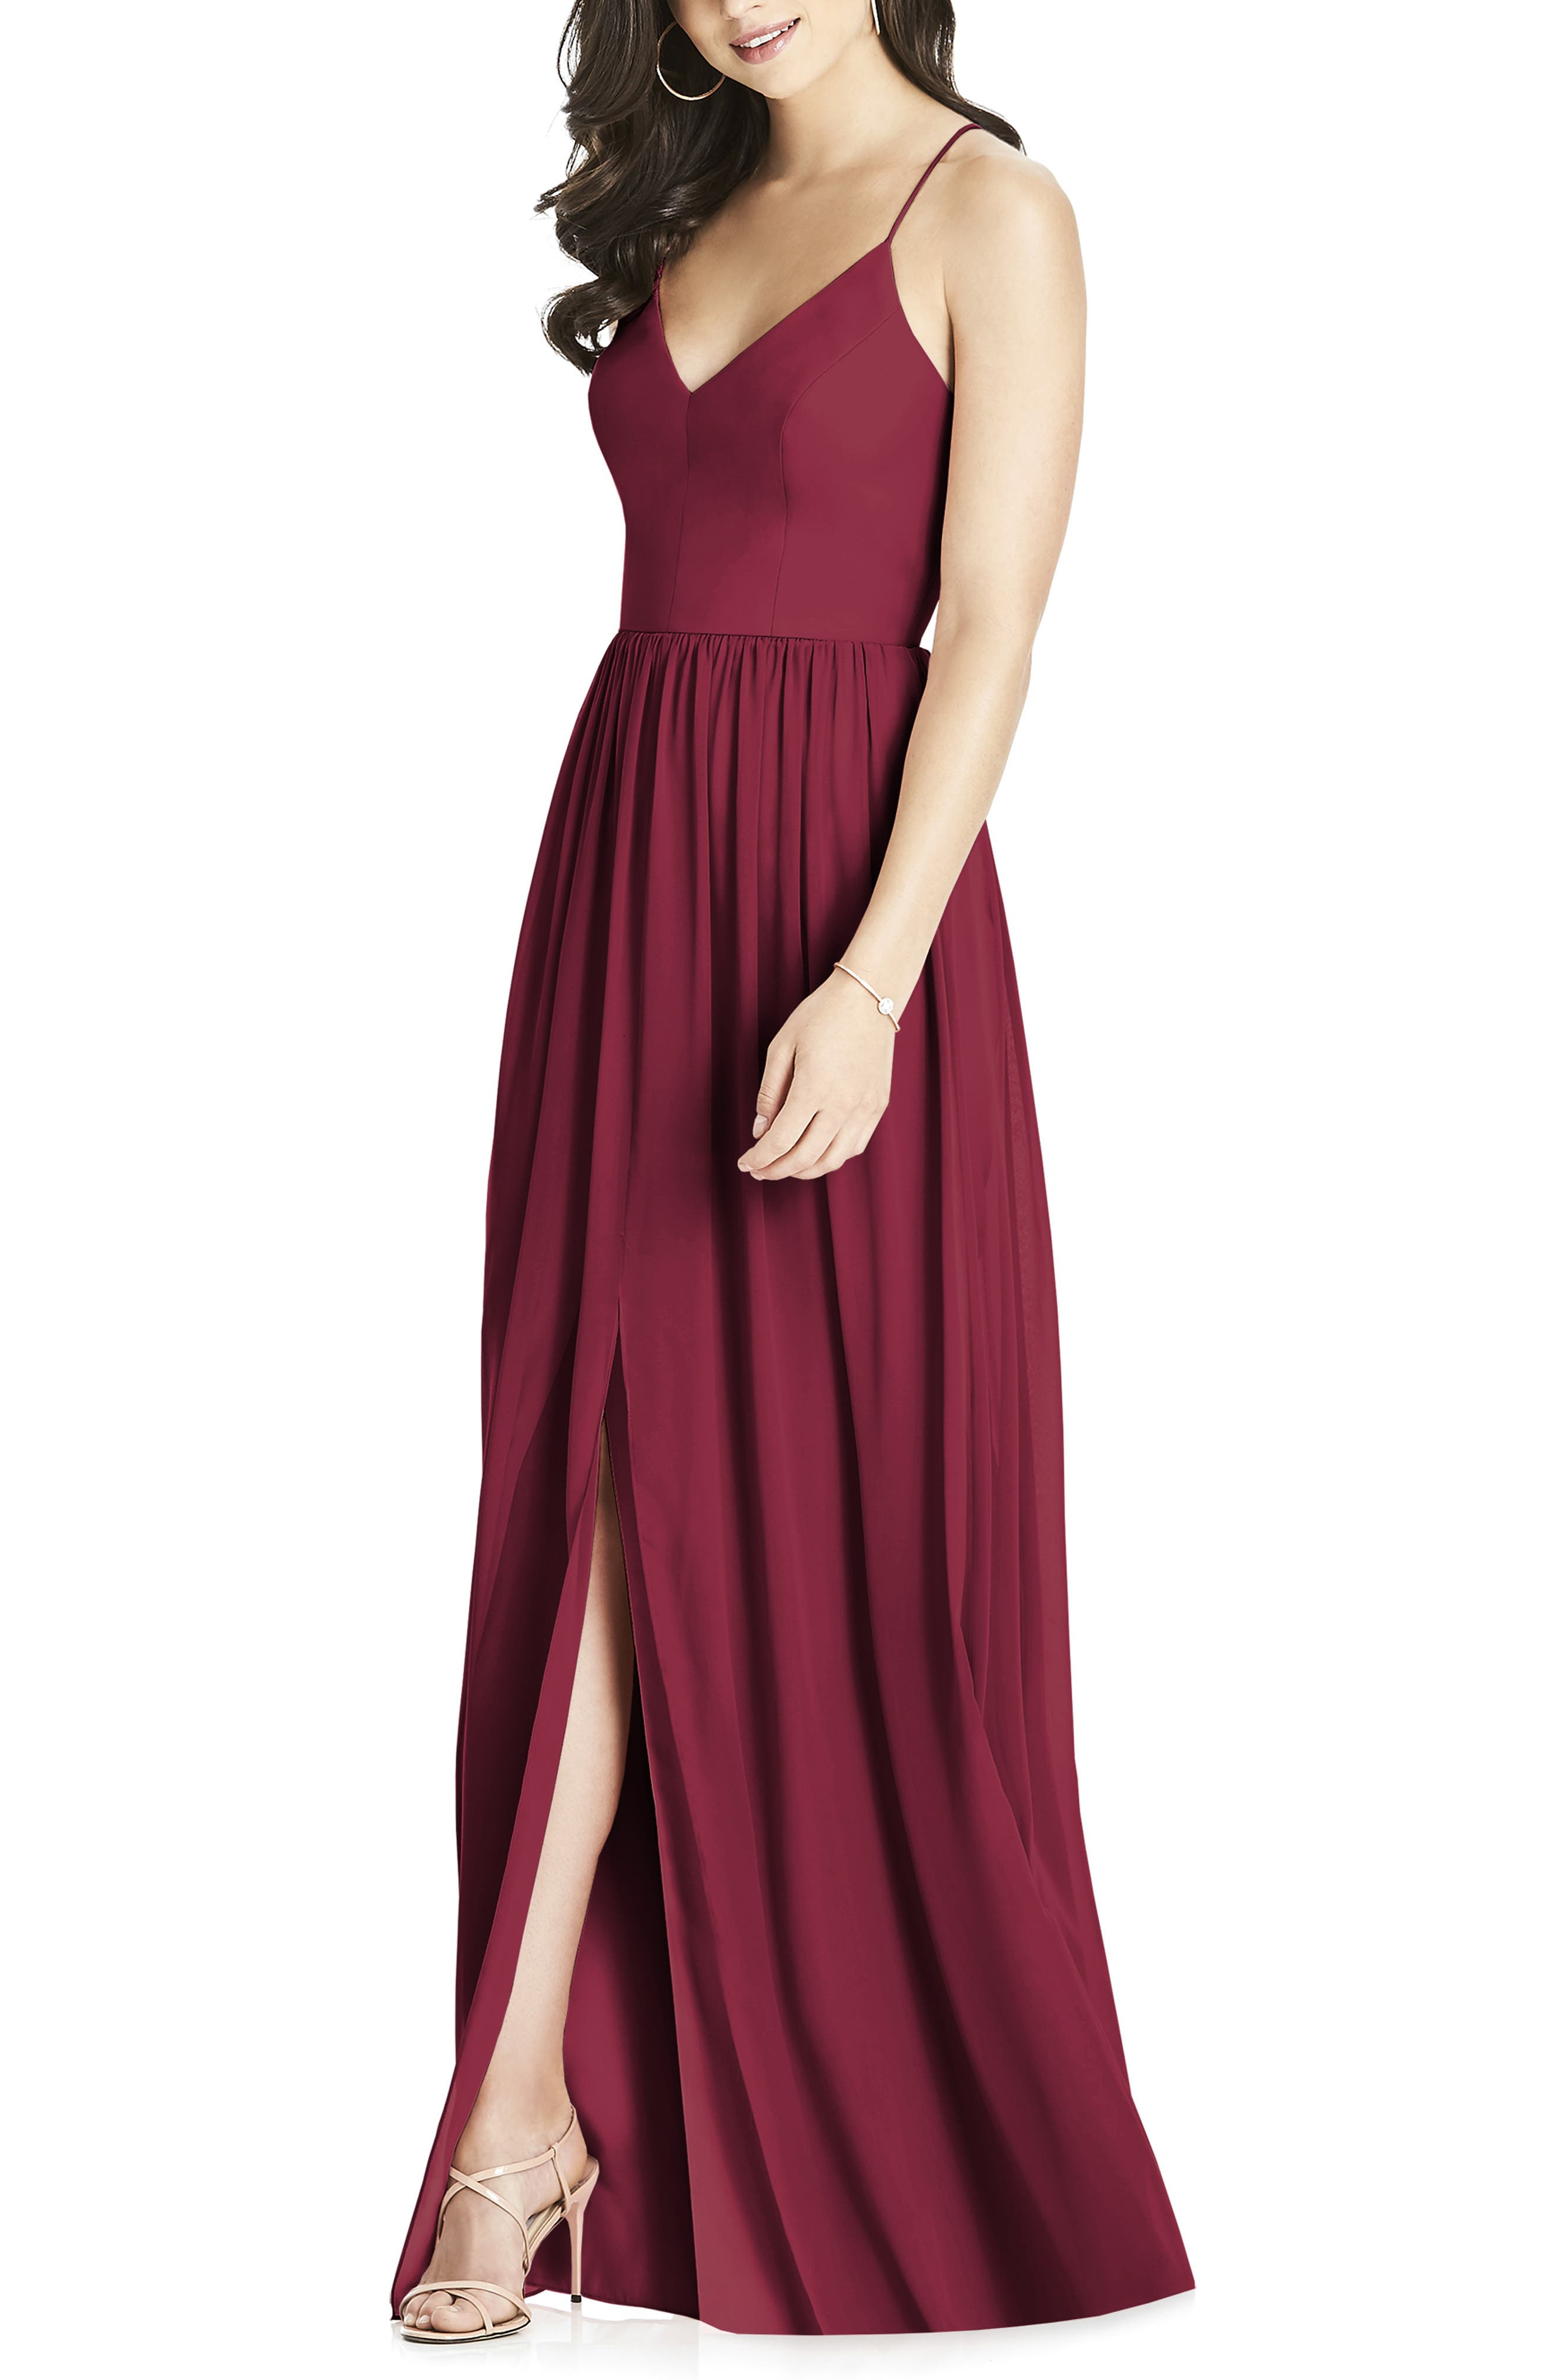 This elegant gown is crafted from flowing chiffon that drapes eloquently down the pleated skirt and features an open back crisscrossed by spaghetti straps. A front slit enhances graceful movement and flashes a lovely length of leg. Style Name: Dessy Collection Spaghetti Strap Chiffon A-Line Gown. Style Number: 5520458. Available in stores.